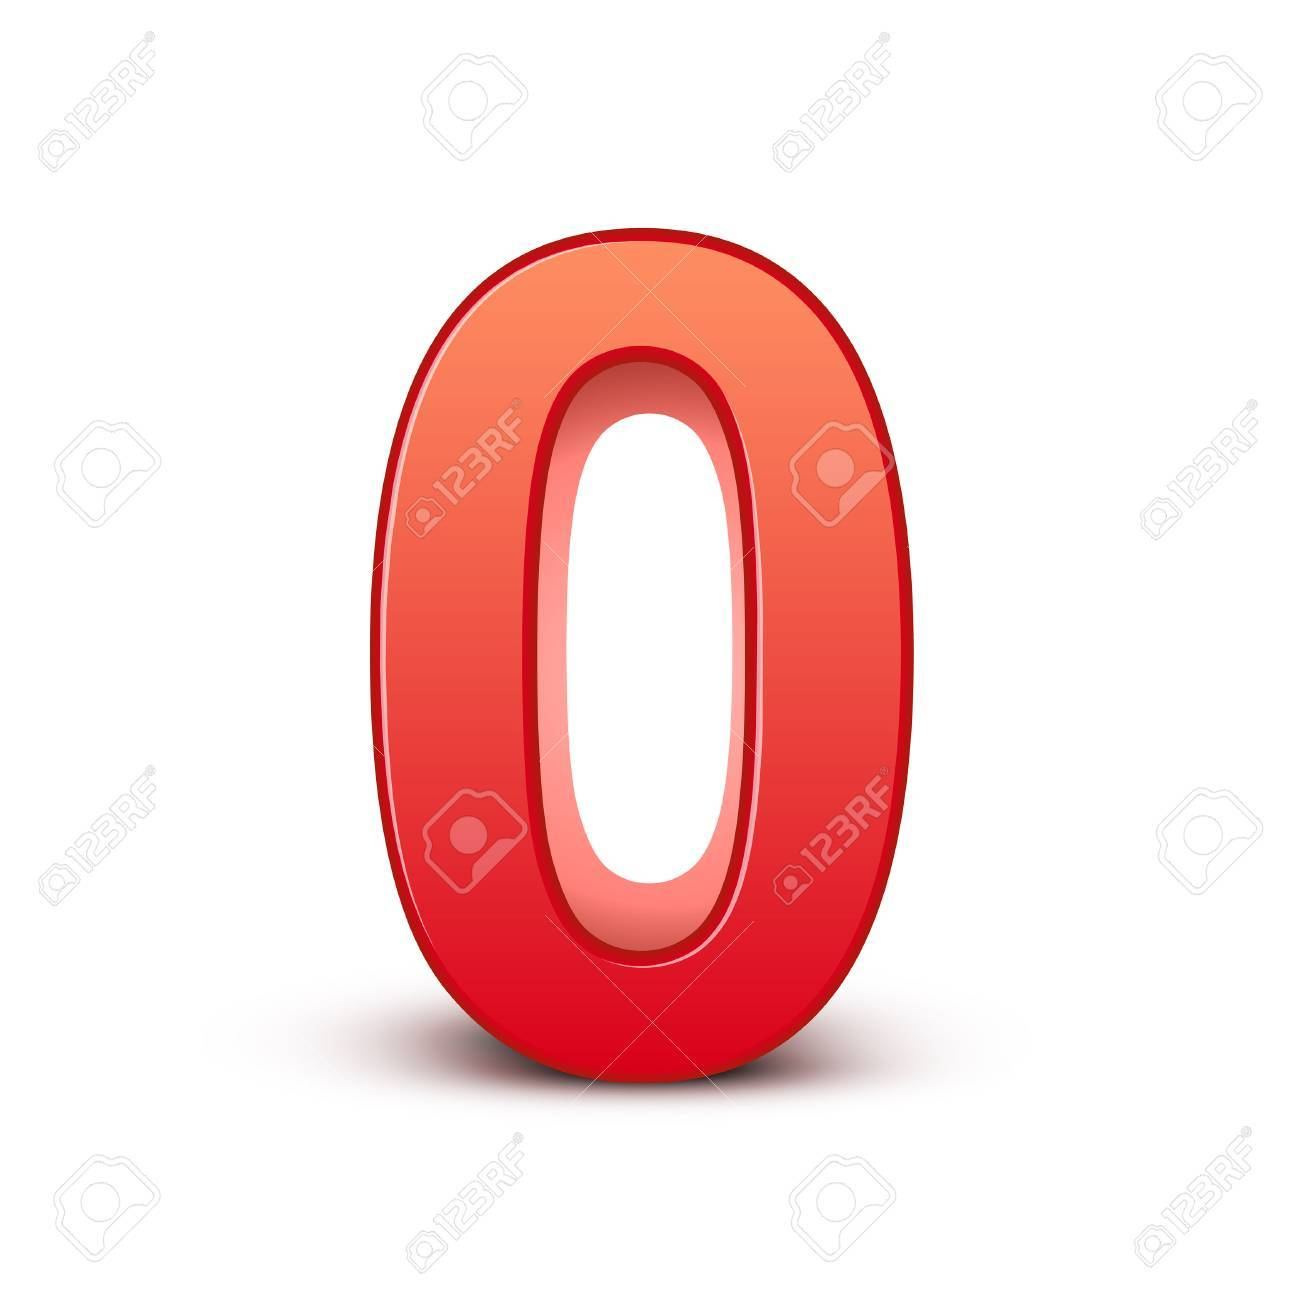 3d shiny red number on white background - 26679015